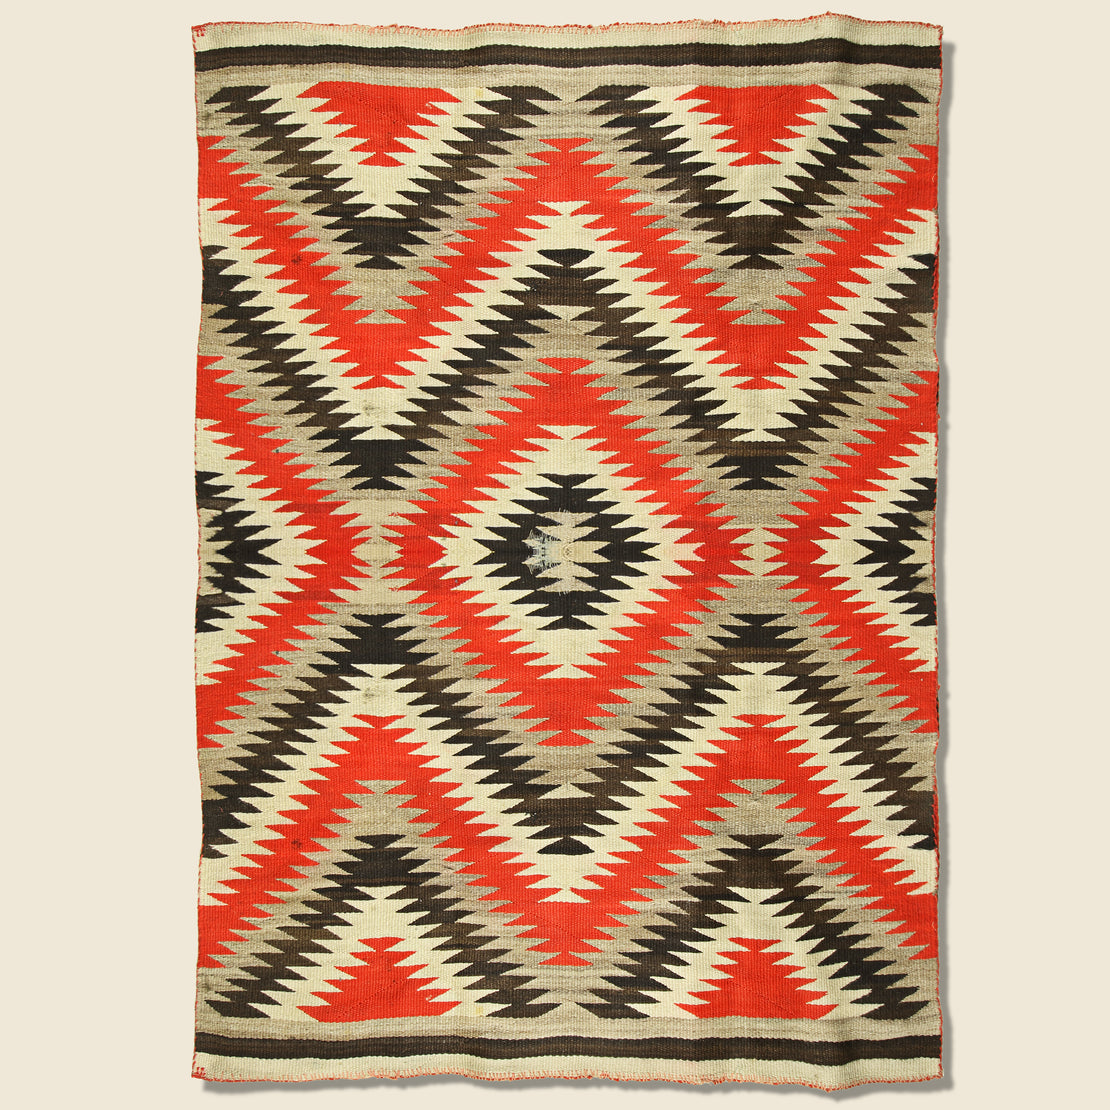 Vintage Hand-Woven Navajo Wool Rug - Red/Black/Grey/Cream